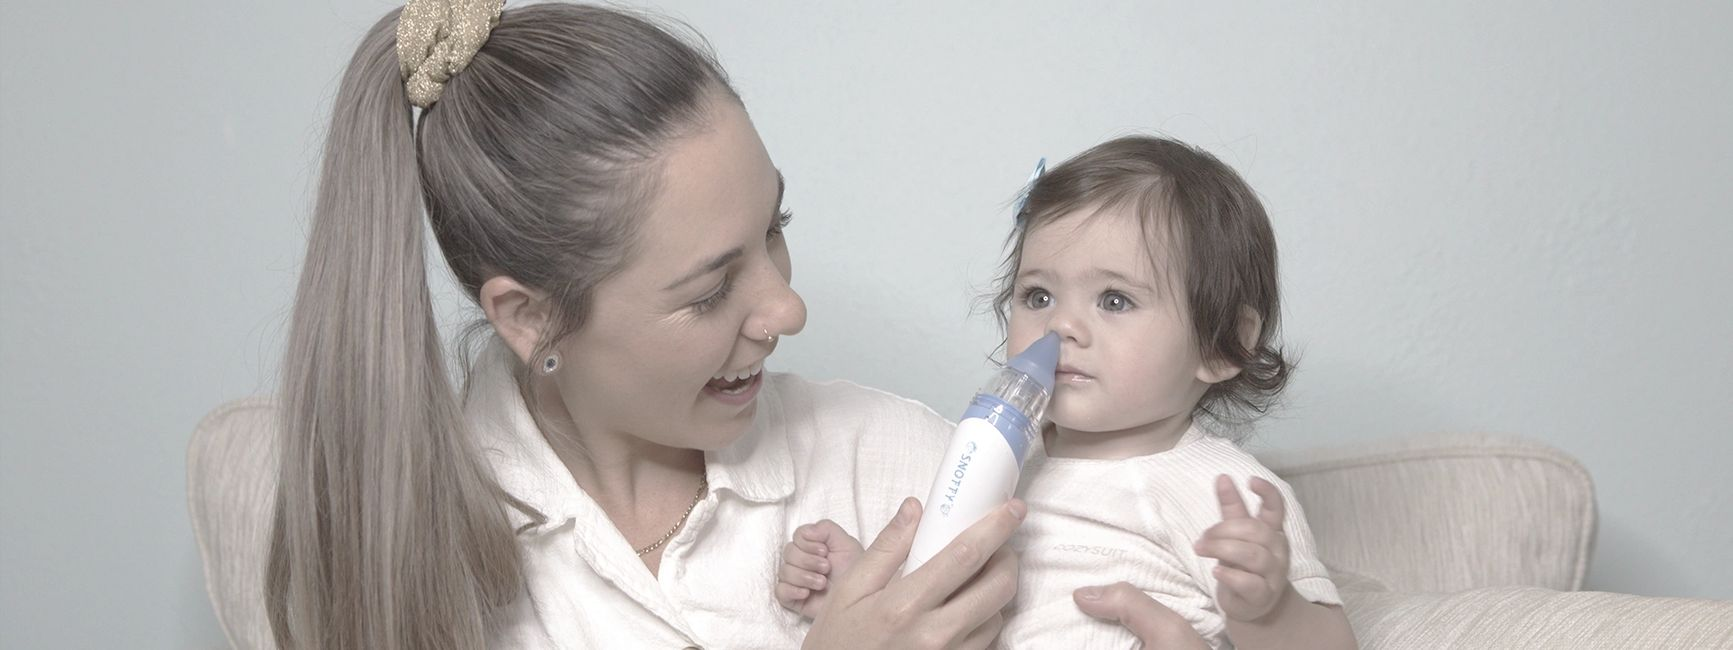 Snotty nasal aspirator available in Australia